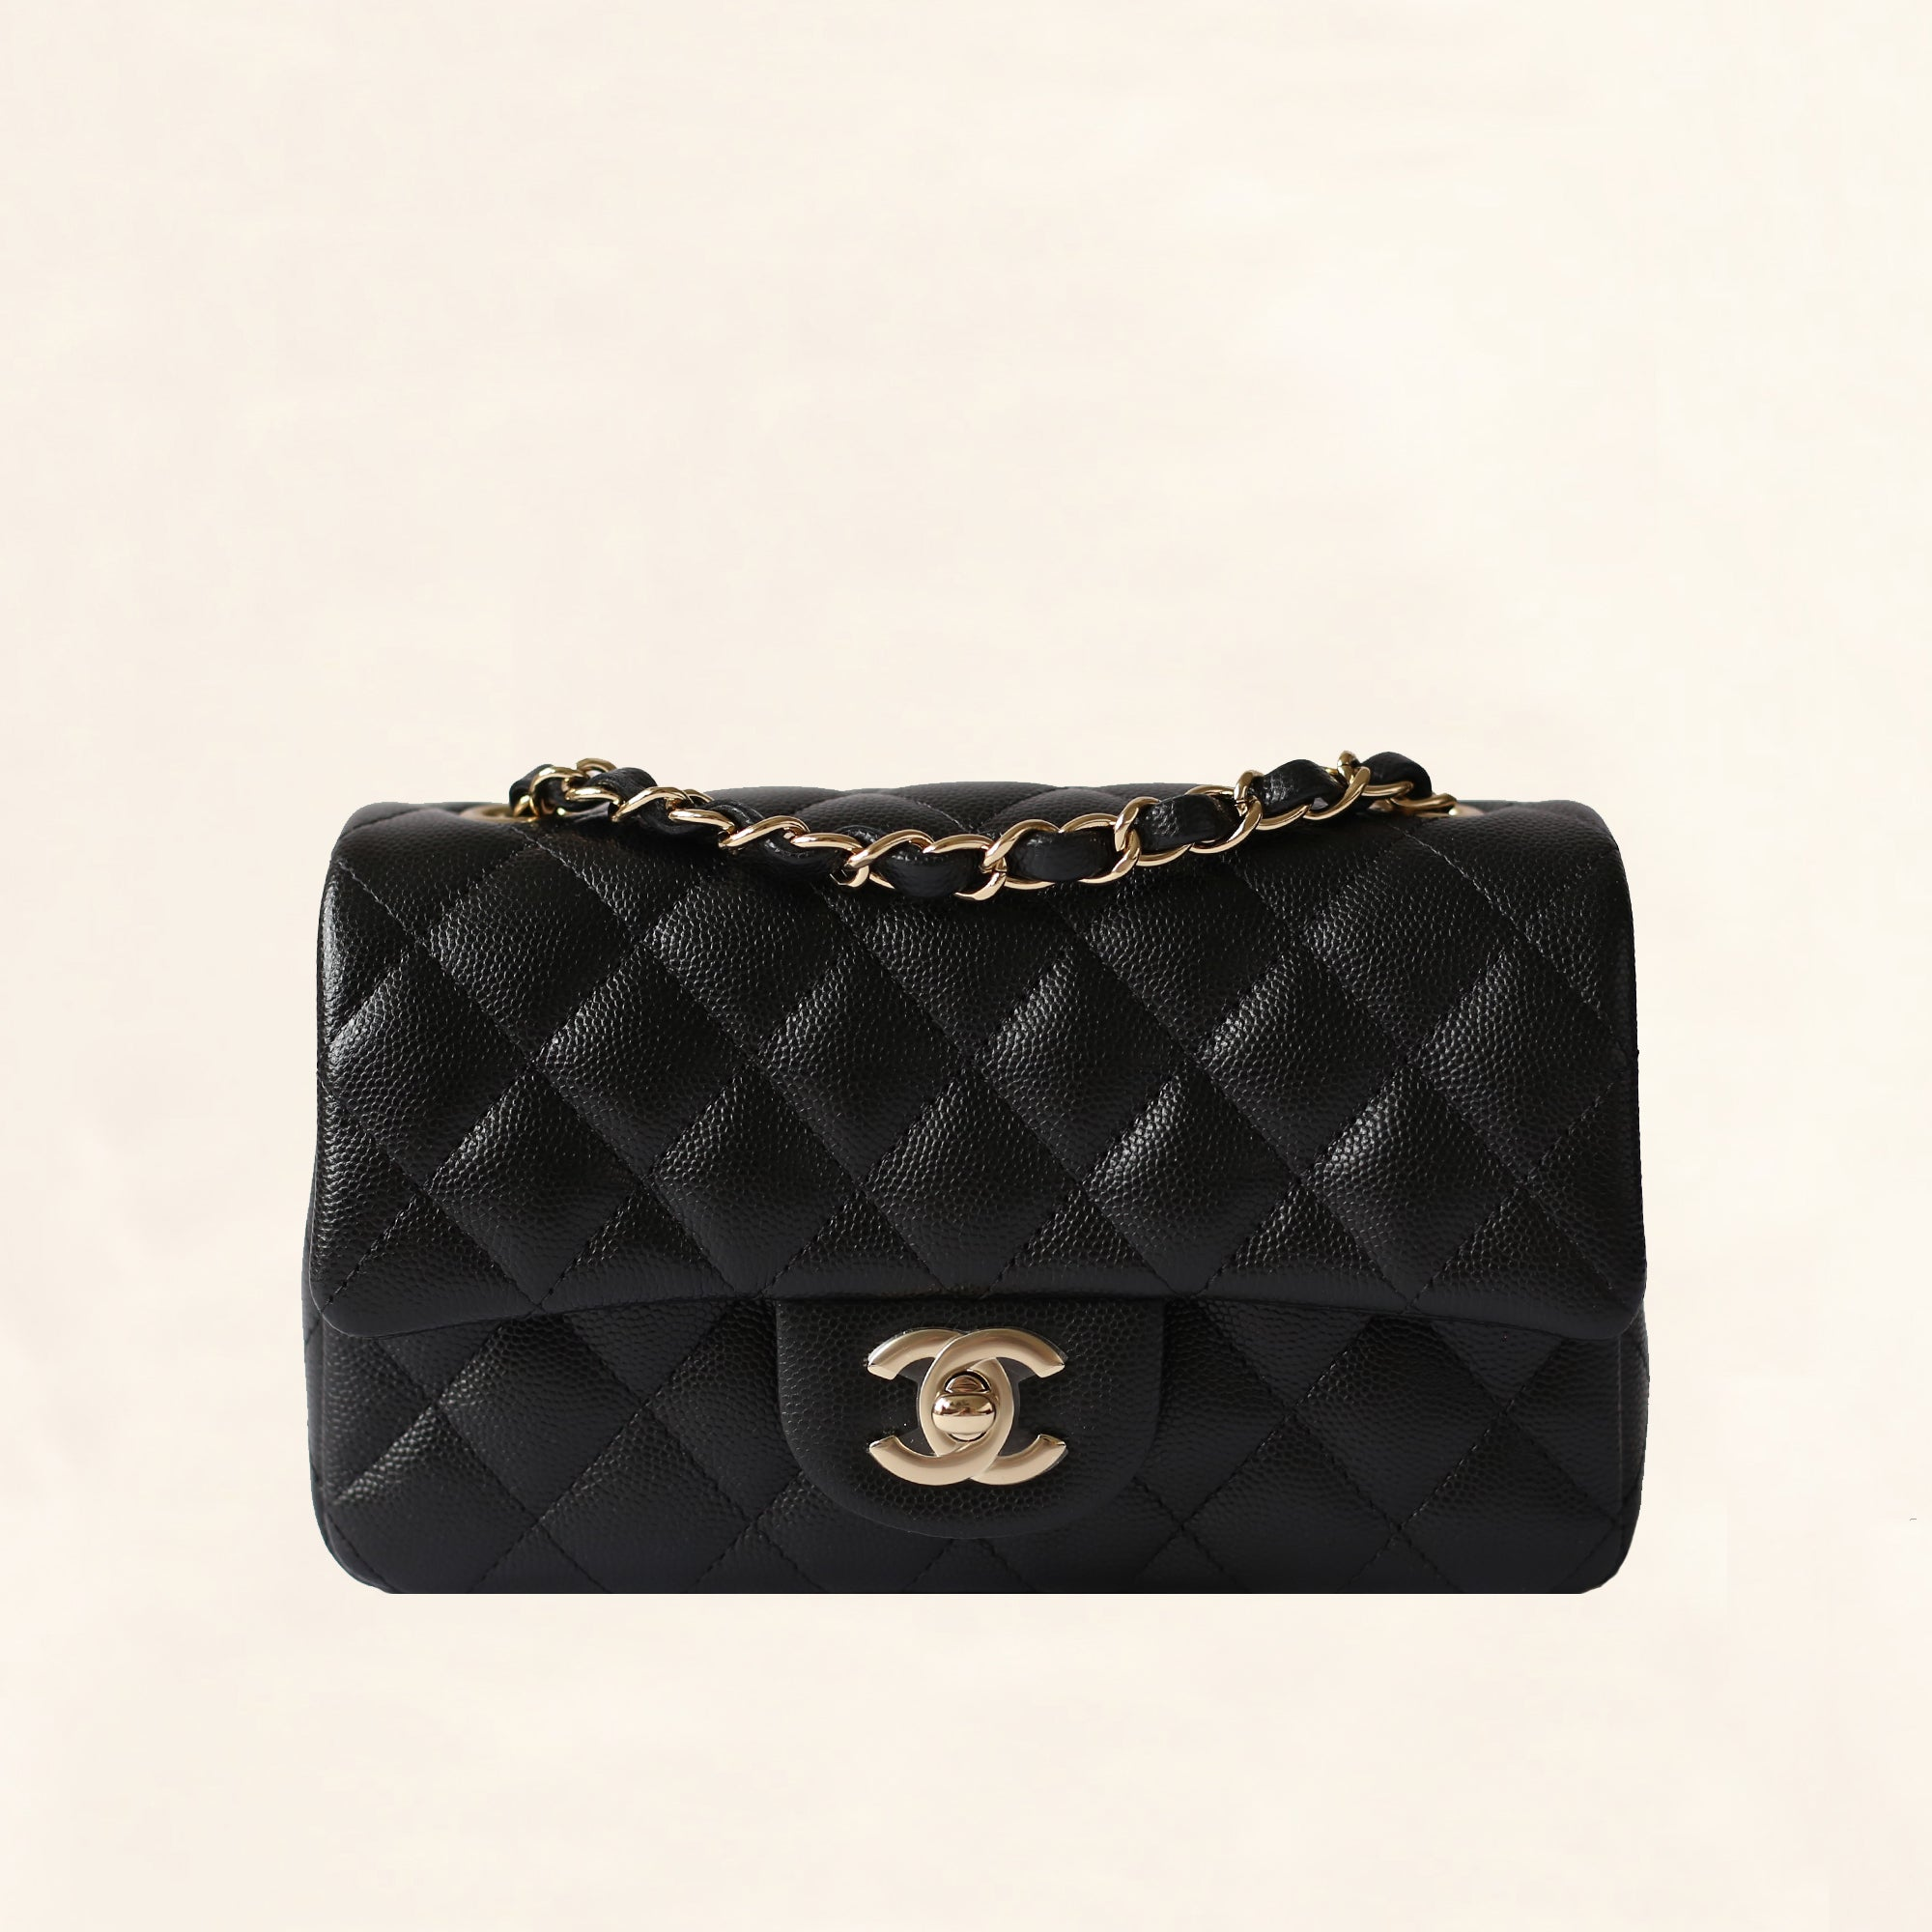 fea191b2a476 Chanel | Black Caviar Mini Rectangular Flap Bag with Light Gold Hardware -  The-Collectory